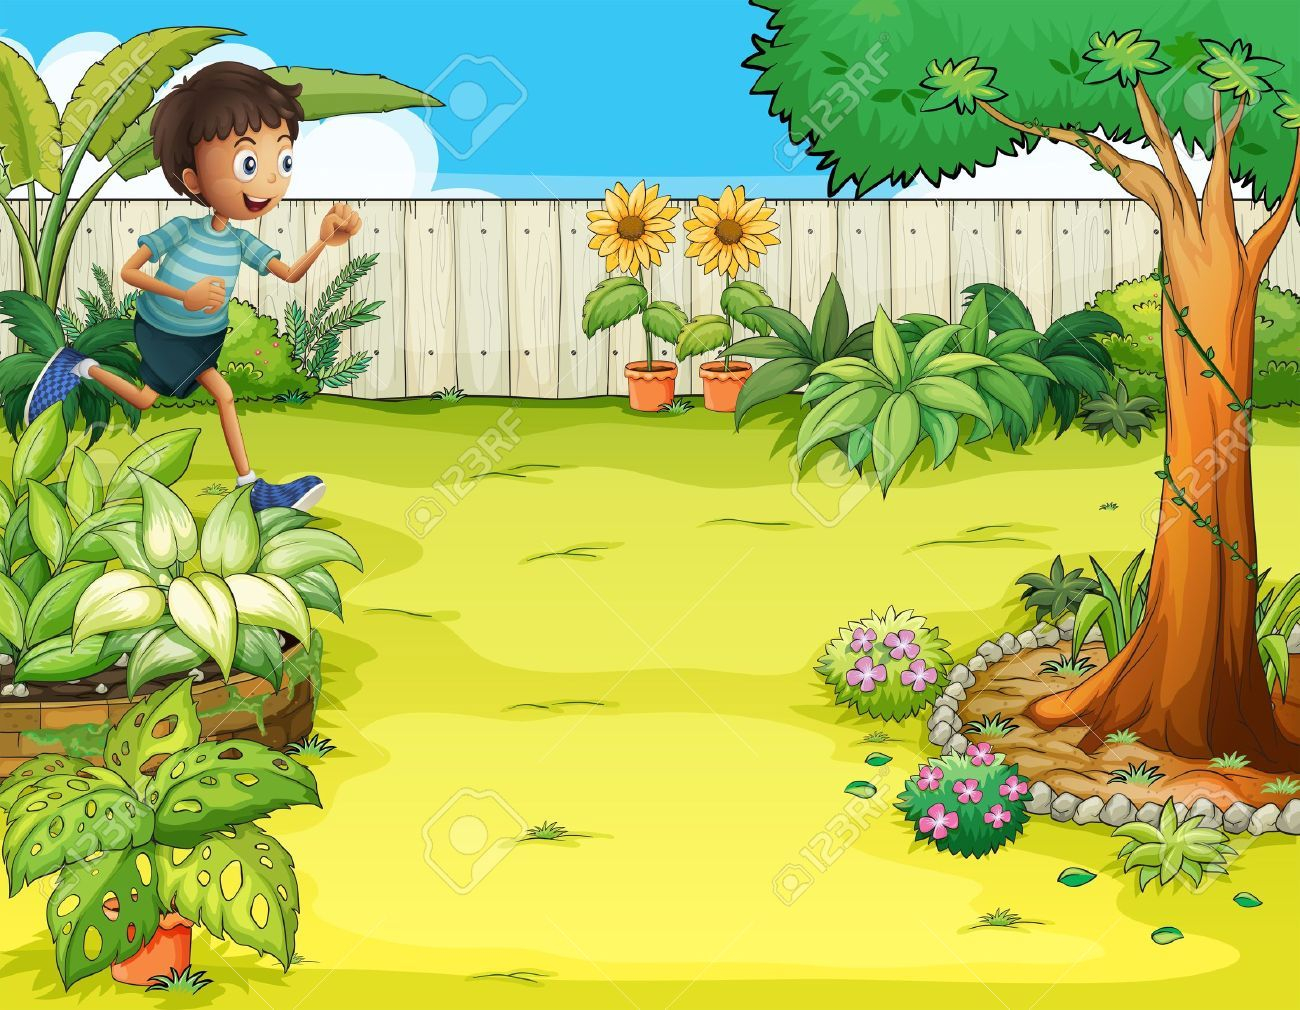 medium resolution of illustration of a boy running at the backyard royalty free cliparts vectors and stock illustration pic 18005070